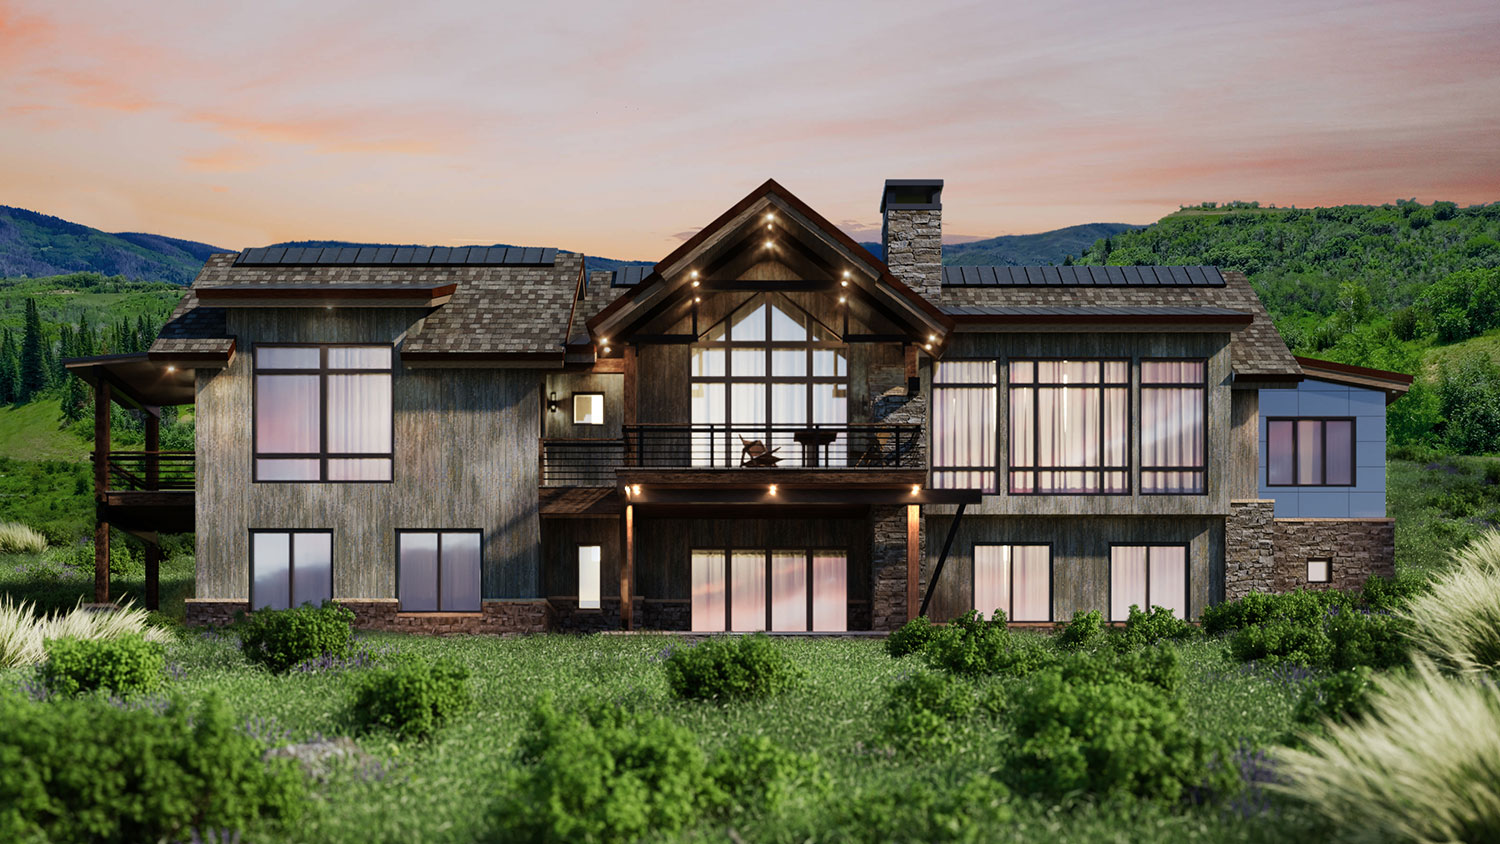 lot 44 spring 1 - Spring Kicks-Off Active Season of Home Building, Headlined by the Mountain Modern Trilogy Residence